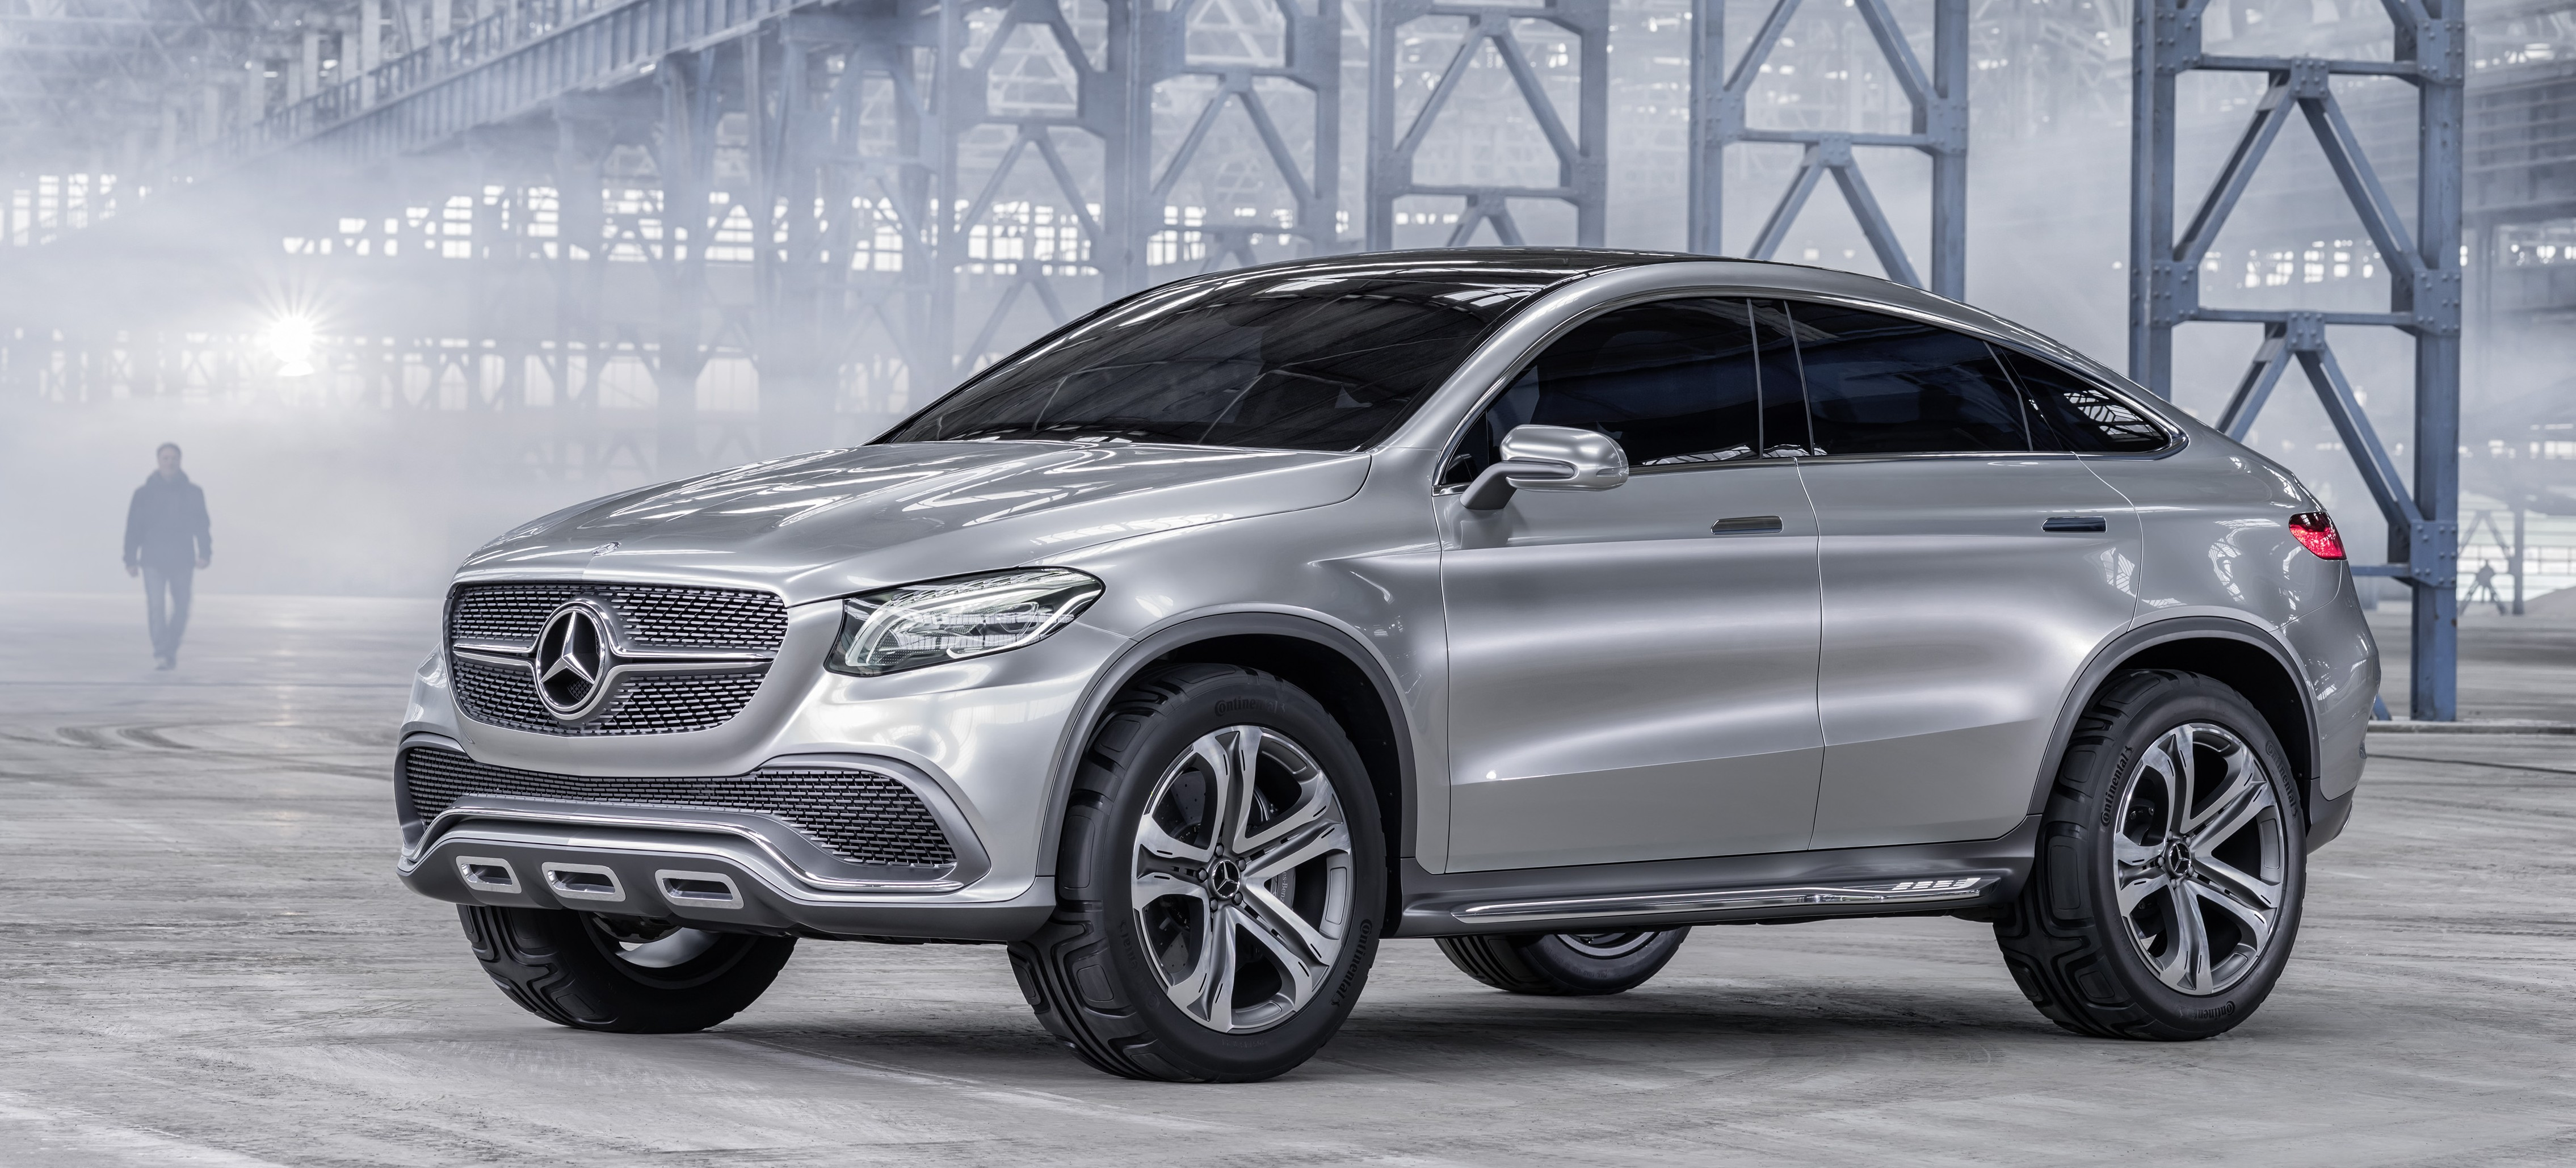 Mercedes C Coupe >> Mercedes-Benz Coupe SUV Concept previews X6 rival Paul Tan - Image 242566